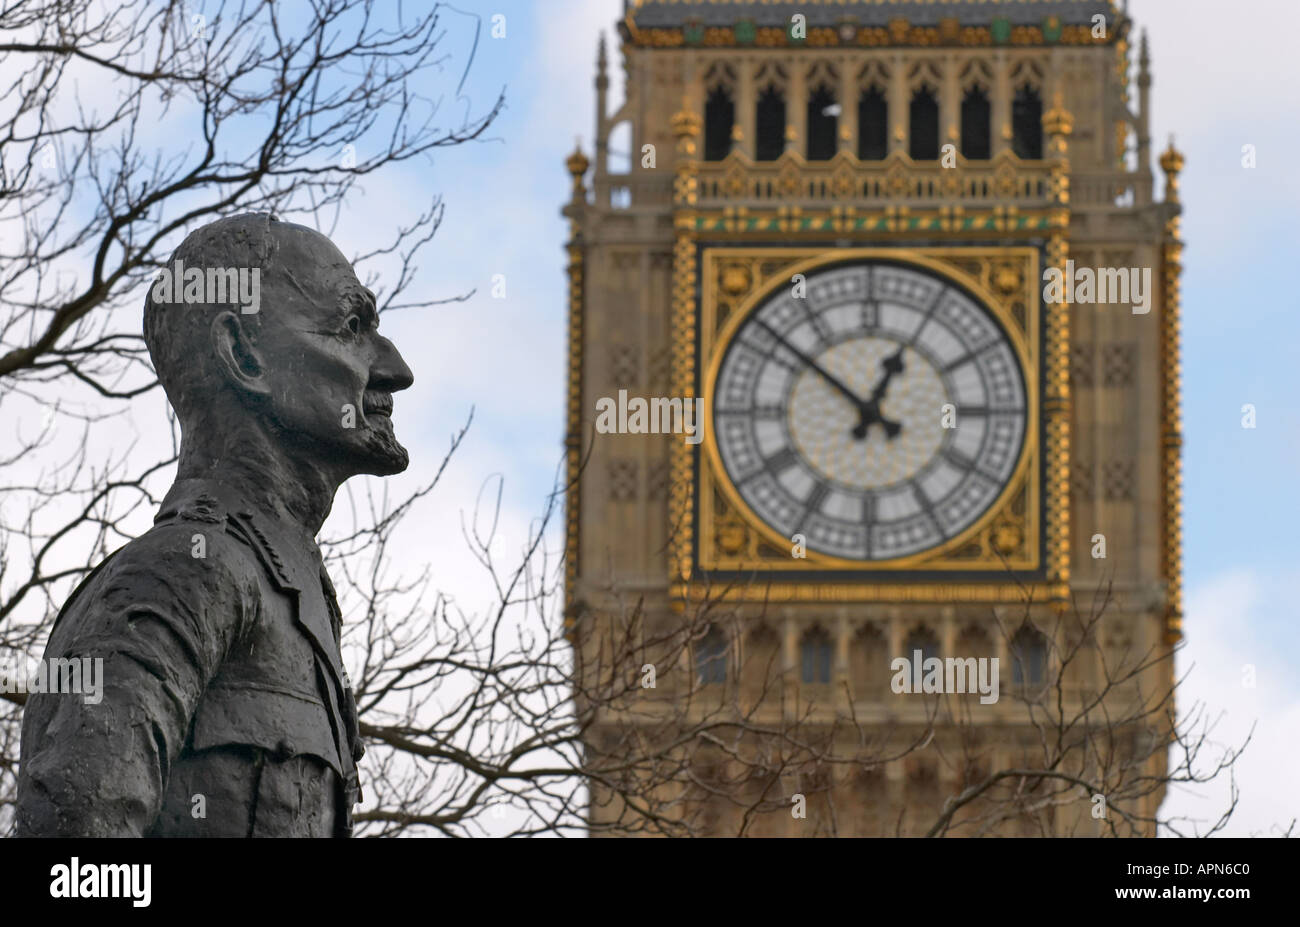 Statue of Jan Christian Smuts at Westminster London England - Stock Image